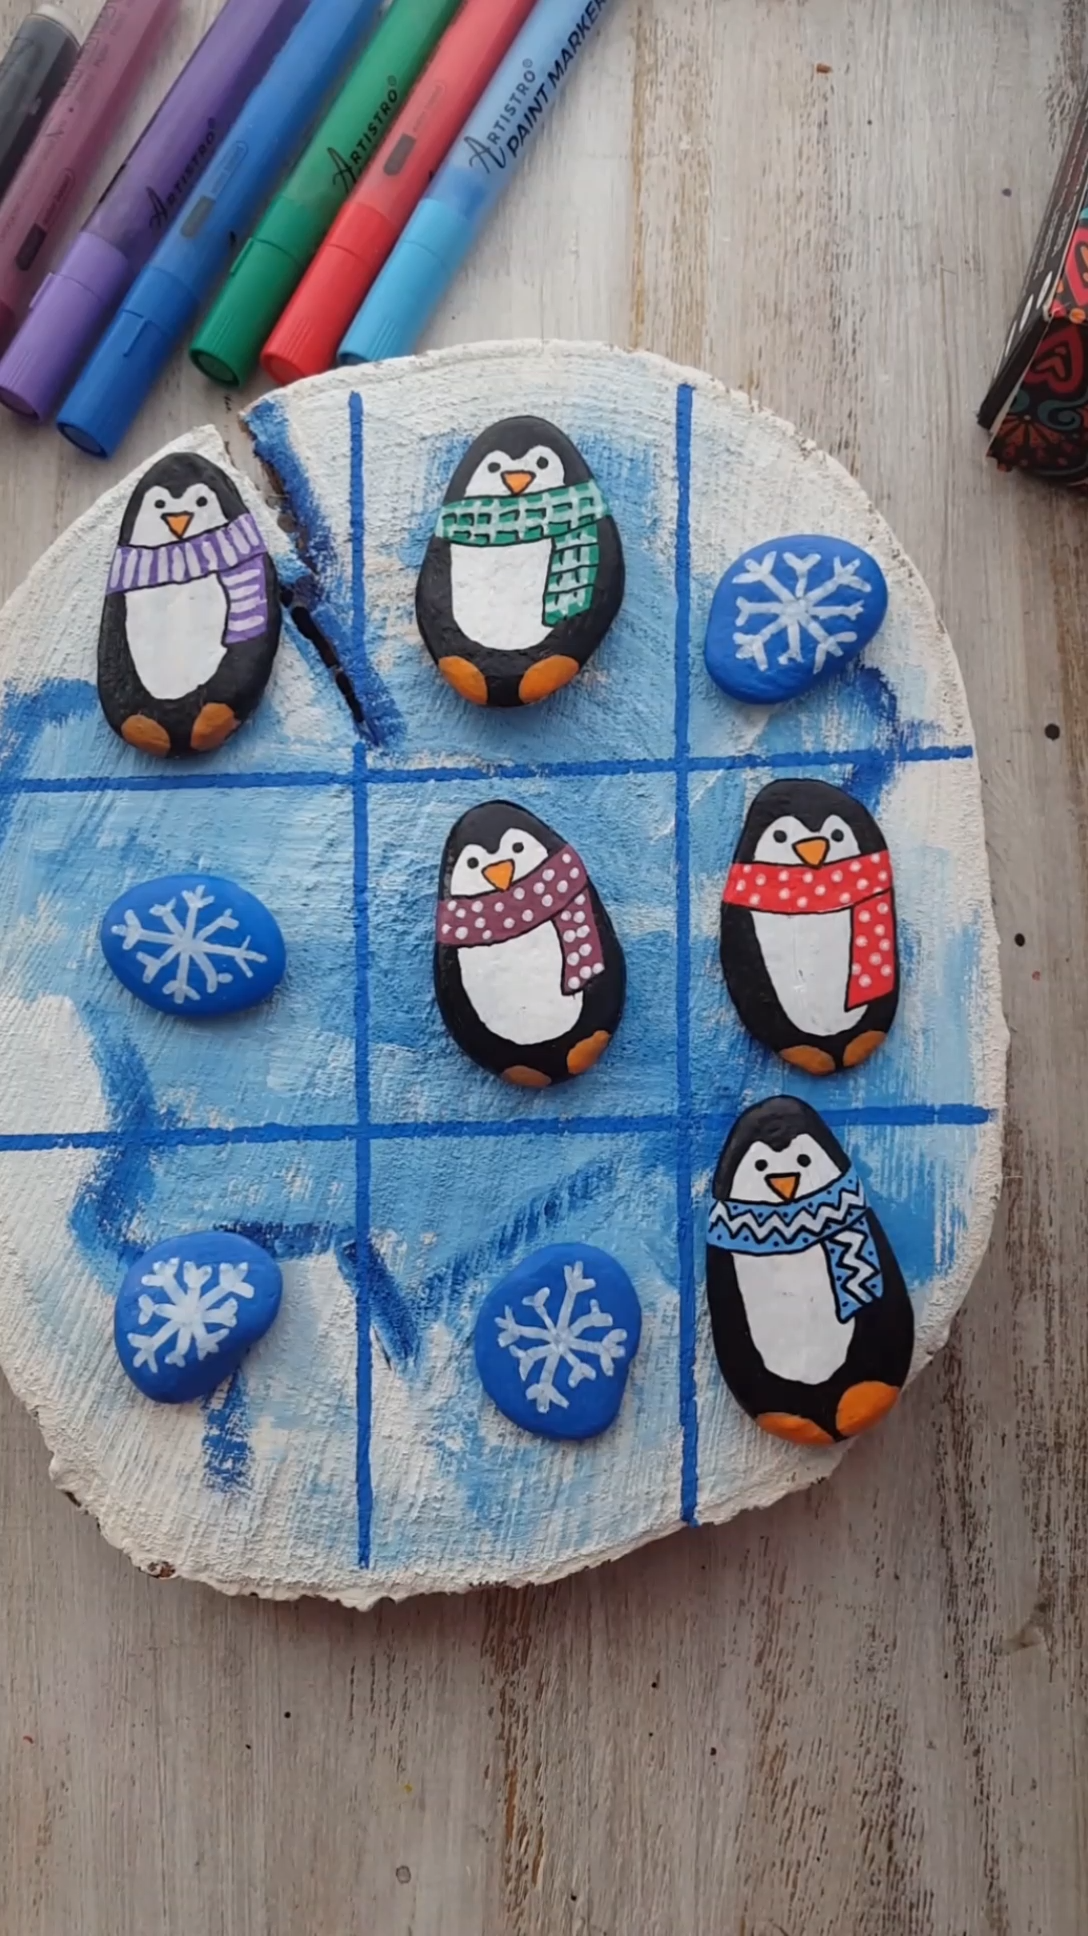 Tic-tac-toe Christmas painting